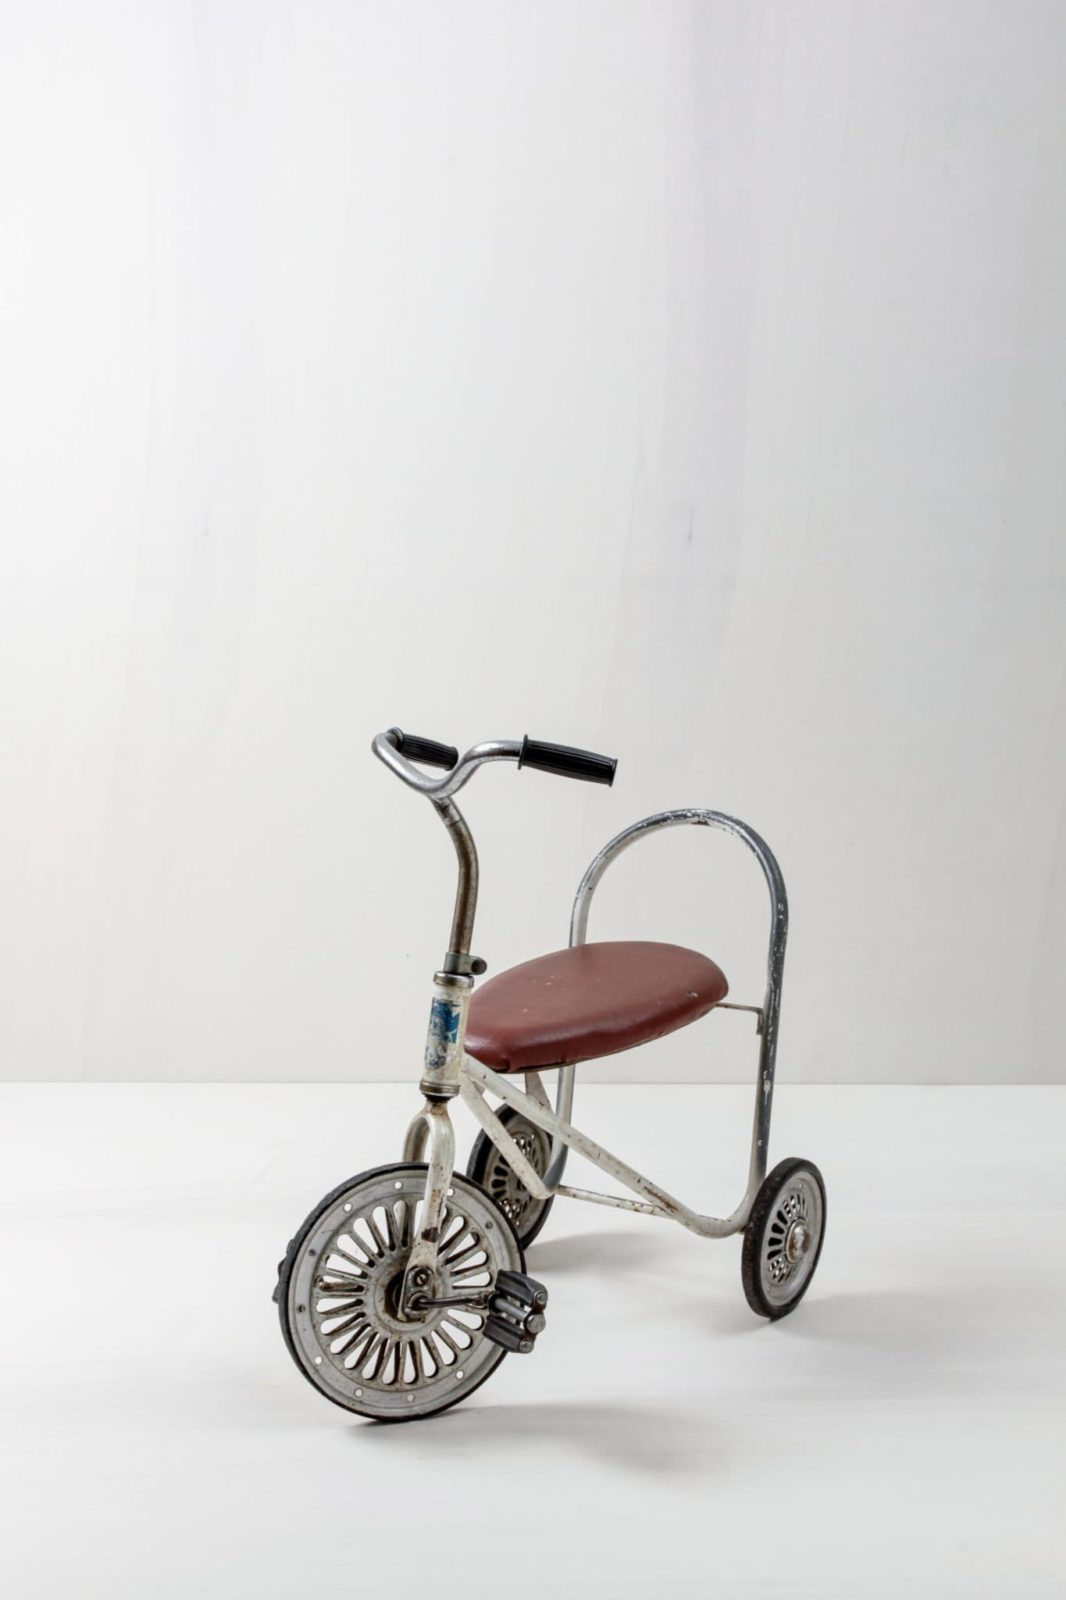 Trike Chico | Small decorative vintage trike for kids. | gotvintage Rental & Event Design